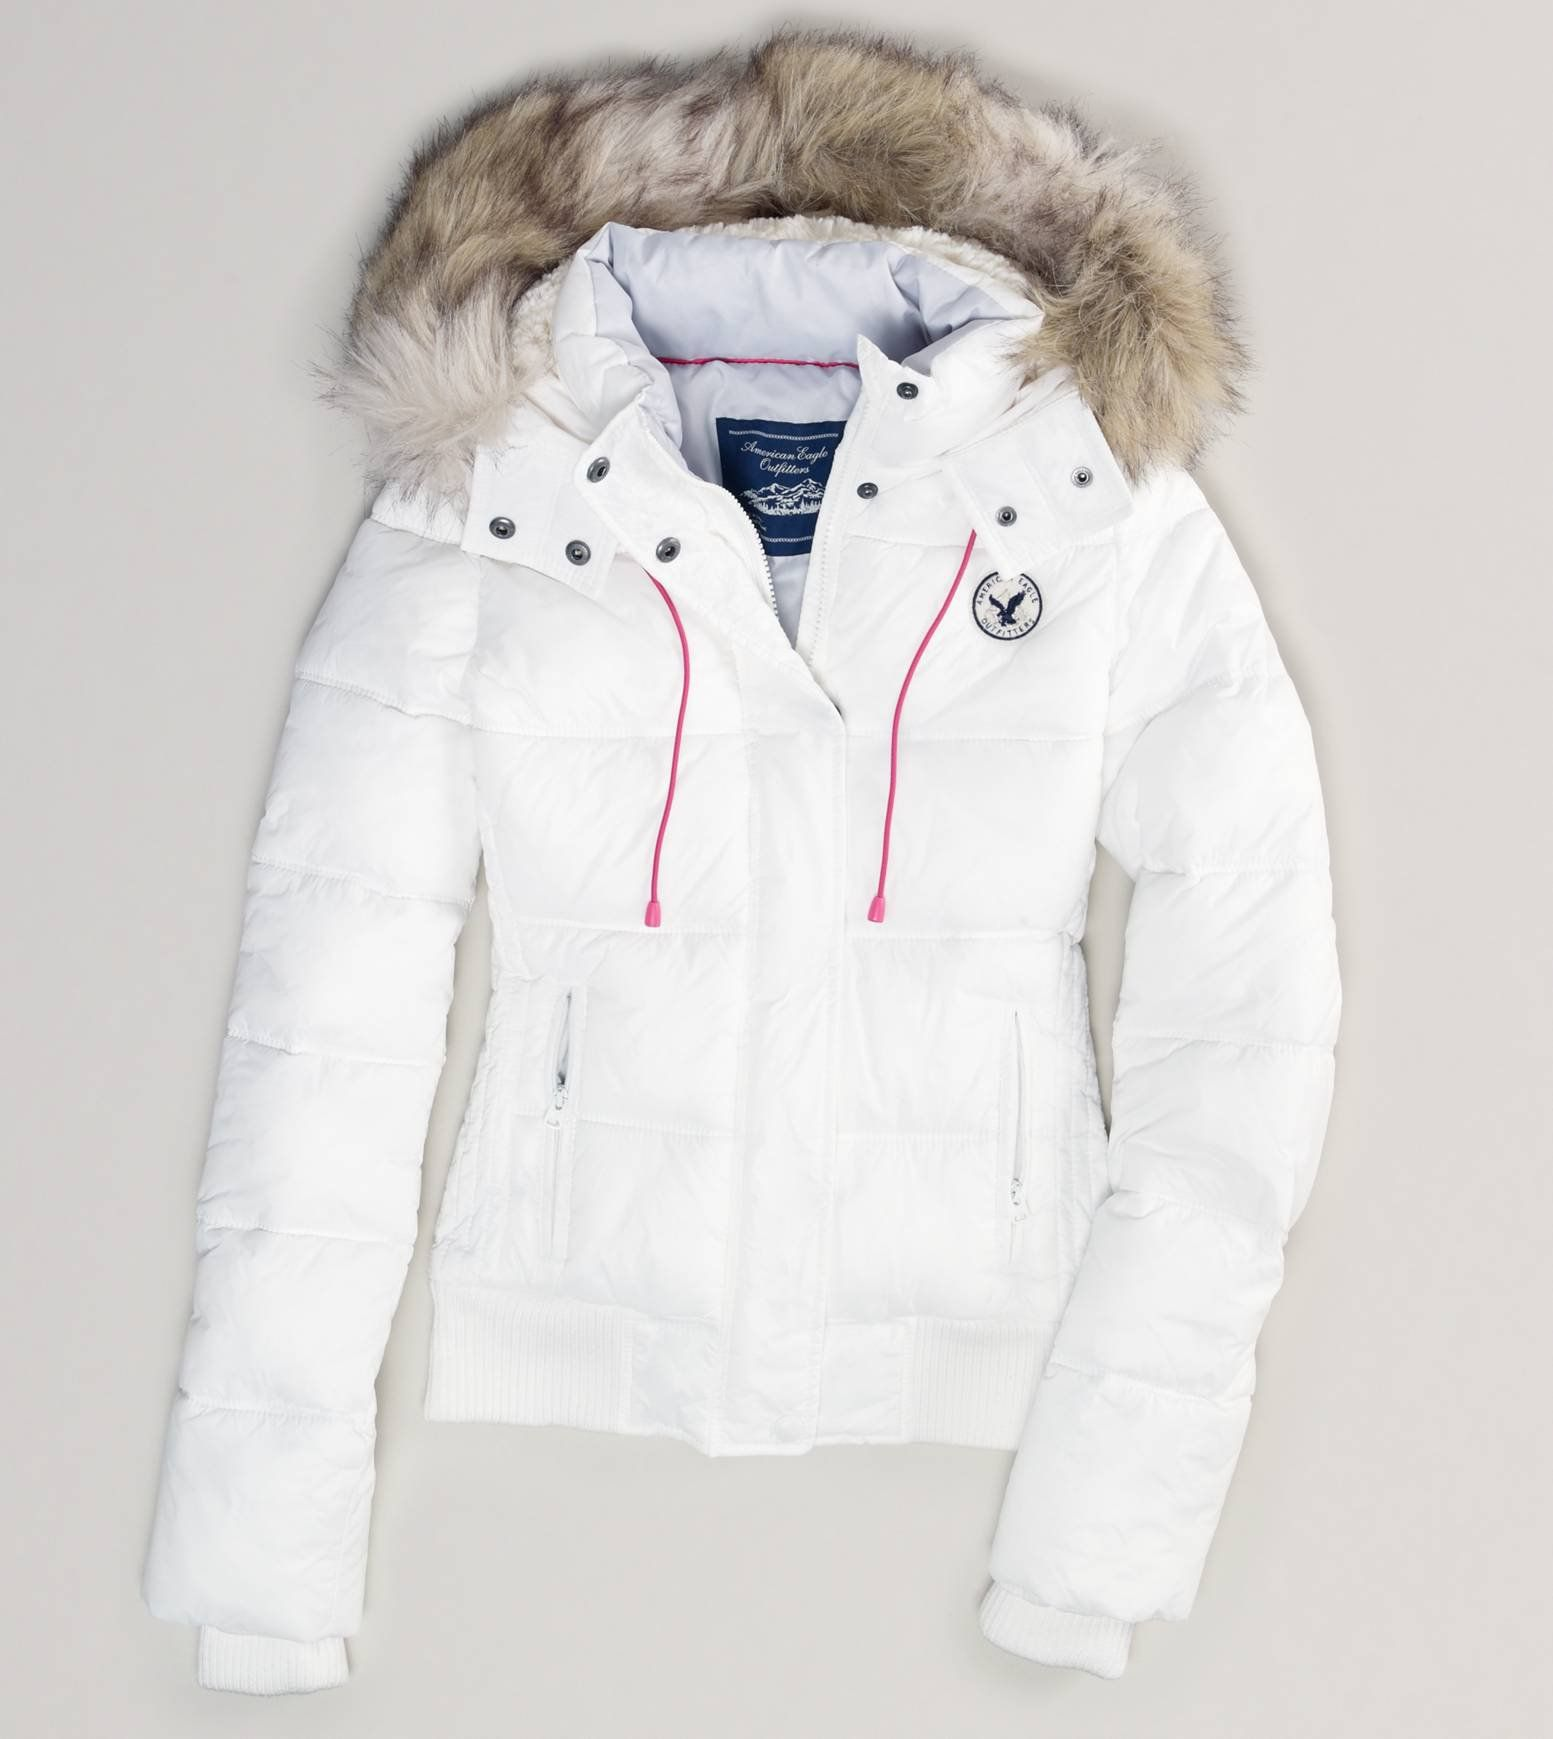 White puff jacket with no belt and brown fur hood